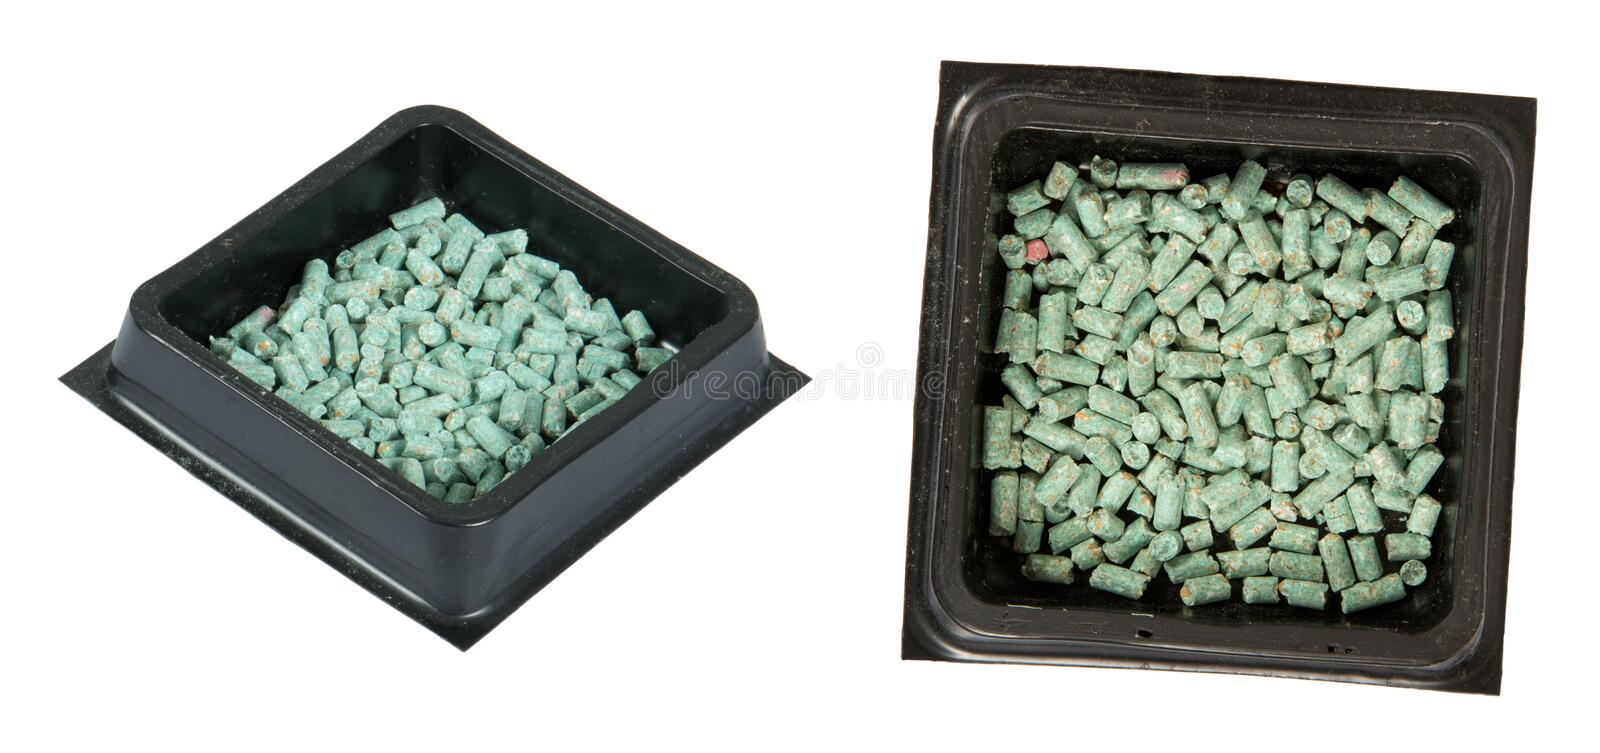 Poison Bait for a Mouse, Rat, or Rodent, Isolated. Poison bait pellets for a rat, mouse, or similar rodent and other pests. Isolated on white royalty free stock photo